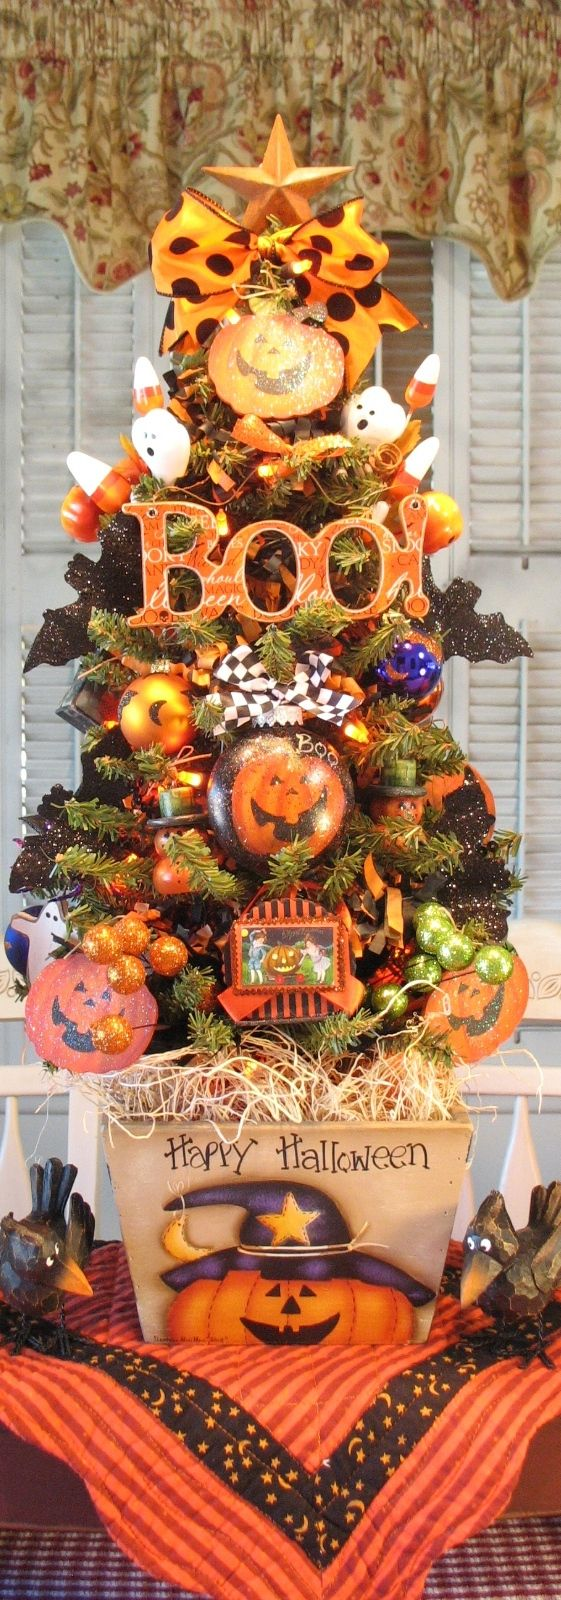 "Happy Halloween!  27"" Halloween Tree - Pattern by Maxine Thomas painted by Denise Guillen"